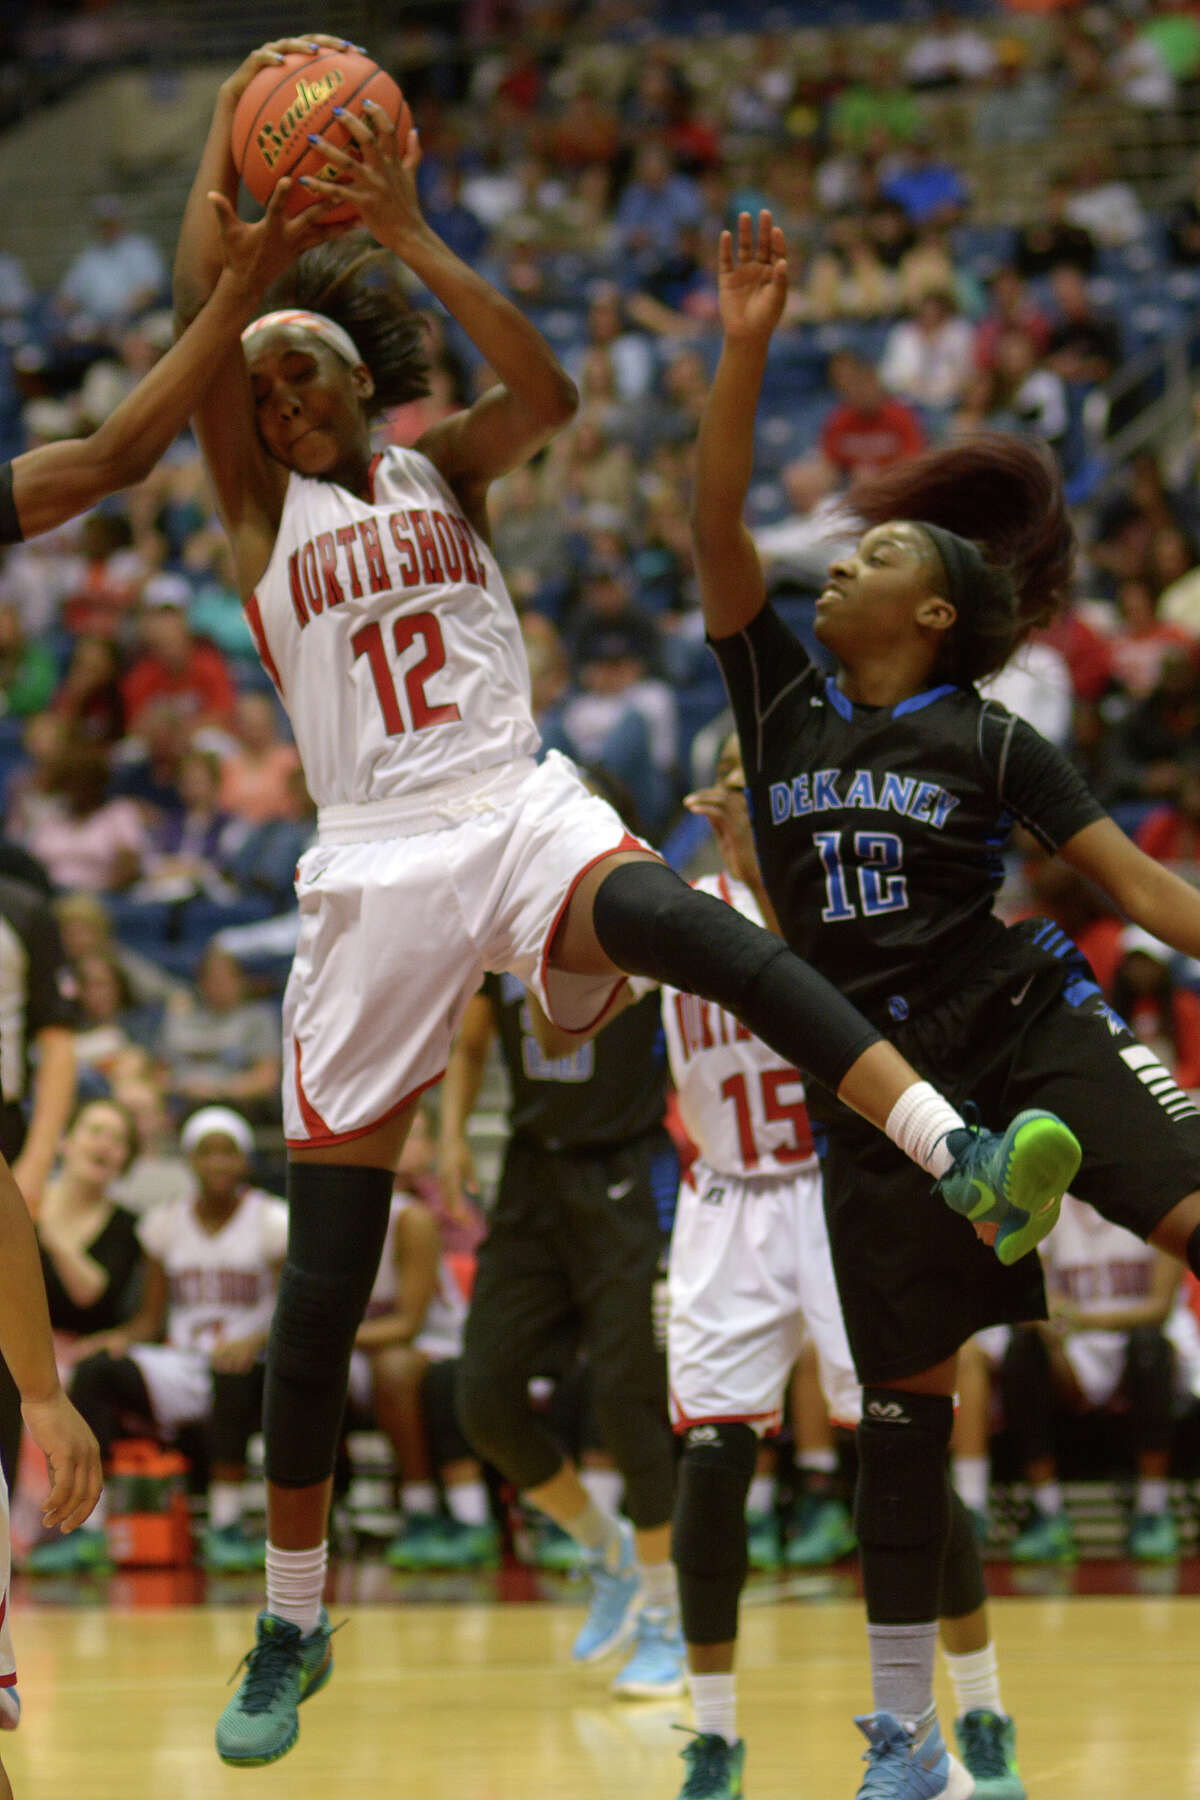 North Shore senior forward Alyssa Okoene (12) pulls a rebound down in front of Dekaney senior guard Kene Hamilton (12) during 1st quarter action of their Class 6A girls basketball state semifinal at the Alamodome in San Antonio on Friday, Mar. 4, 2016. (Photo by Jerry Baker/Freelance)